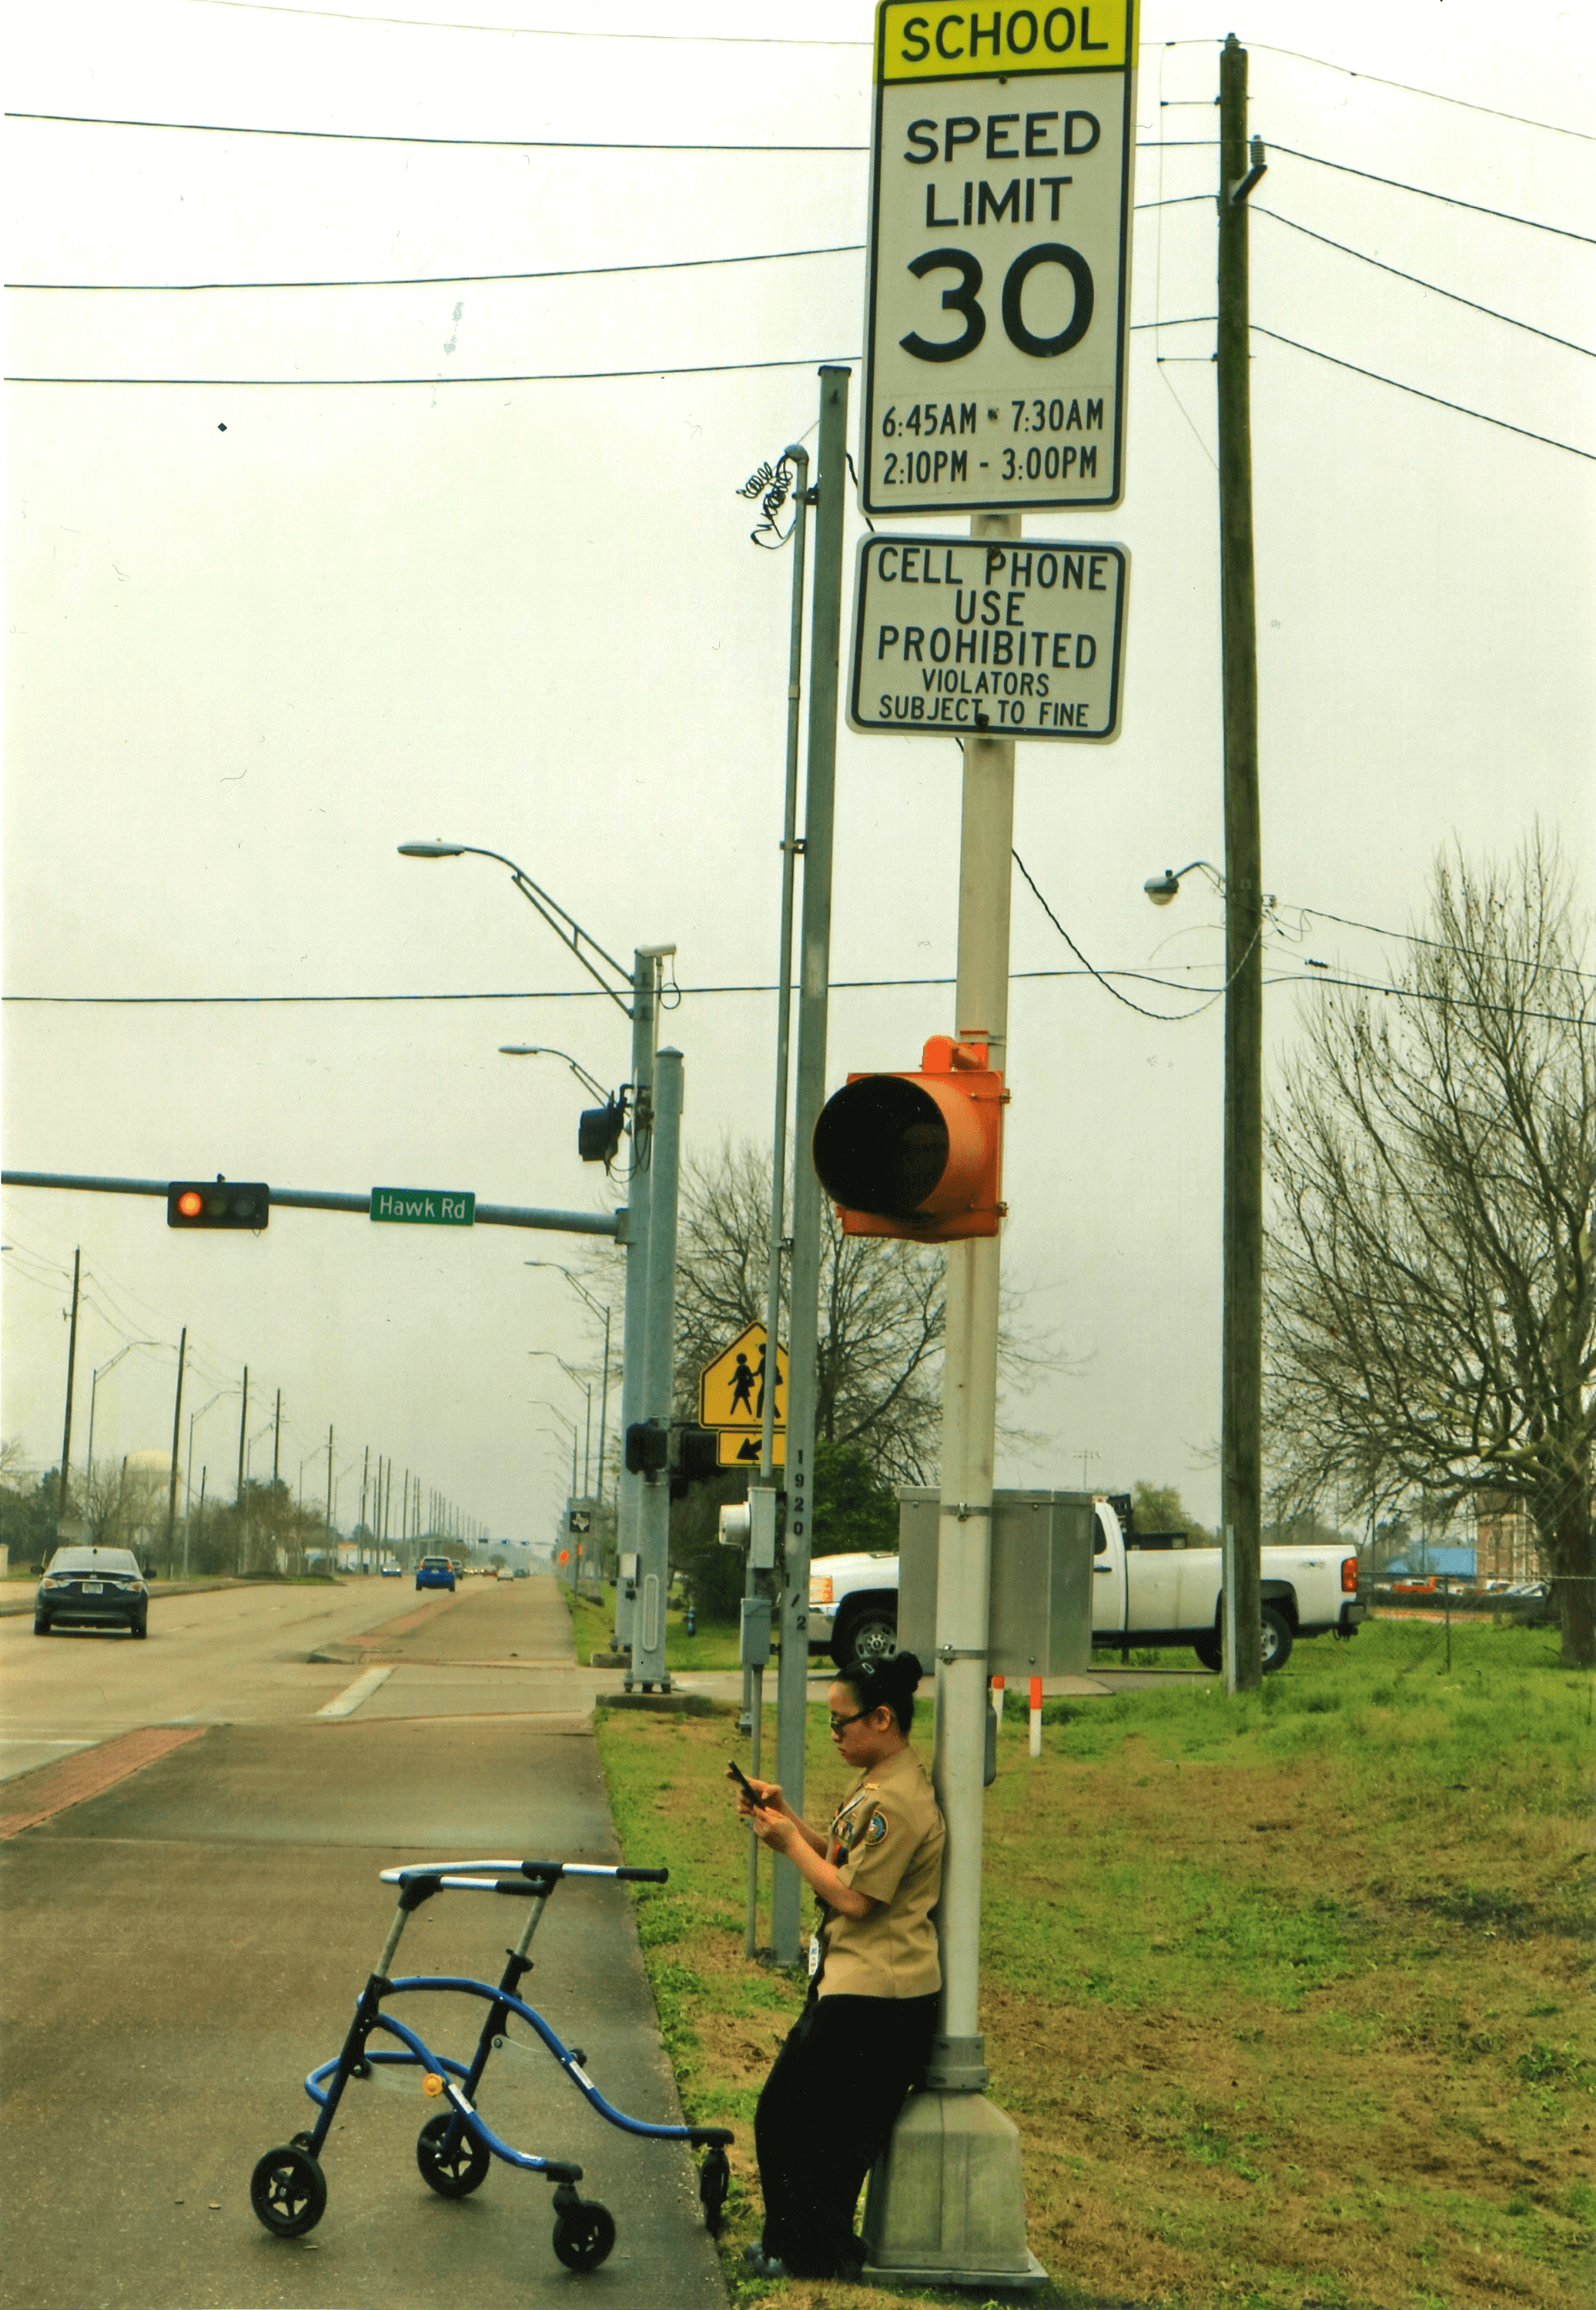 A youth stands by a school zone sign while using their cell phone